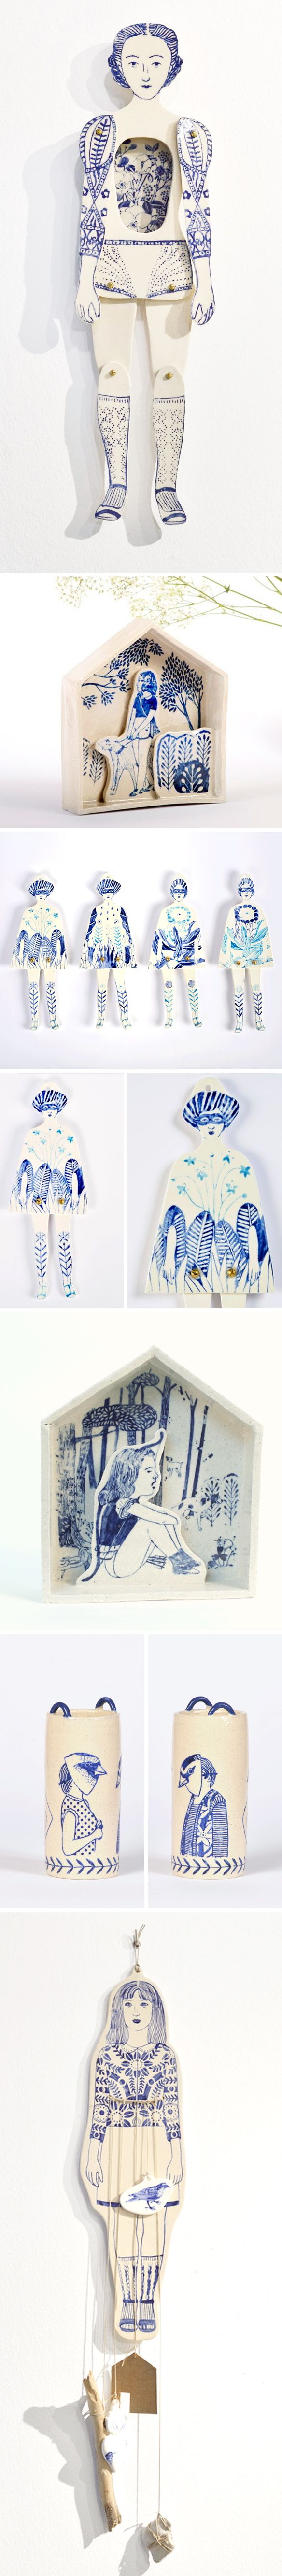 Porcelain paper dolls by Sonia Pulido - WHAT?!